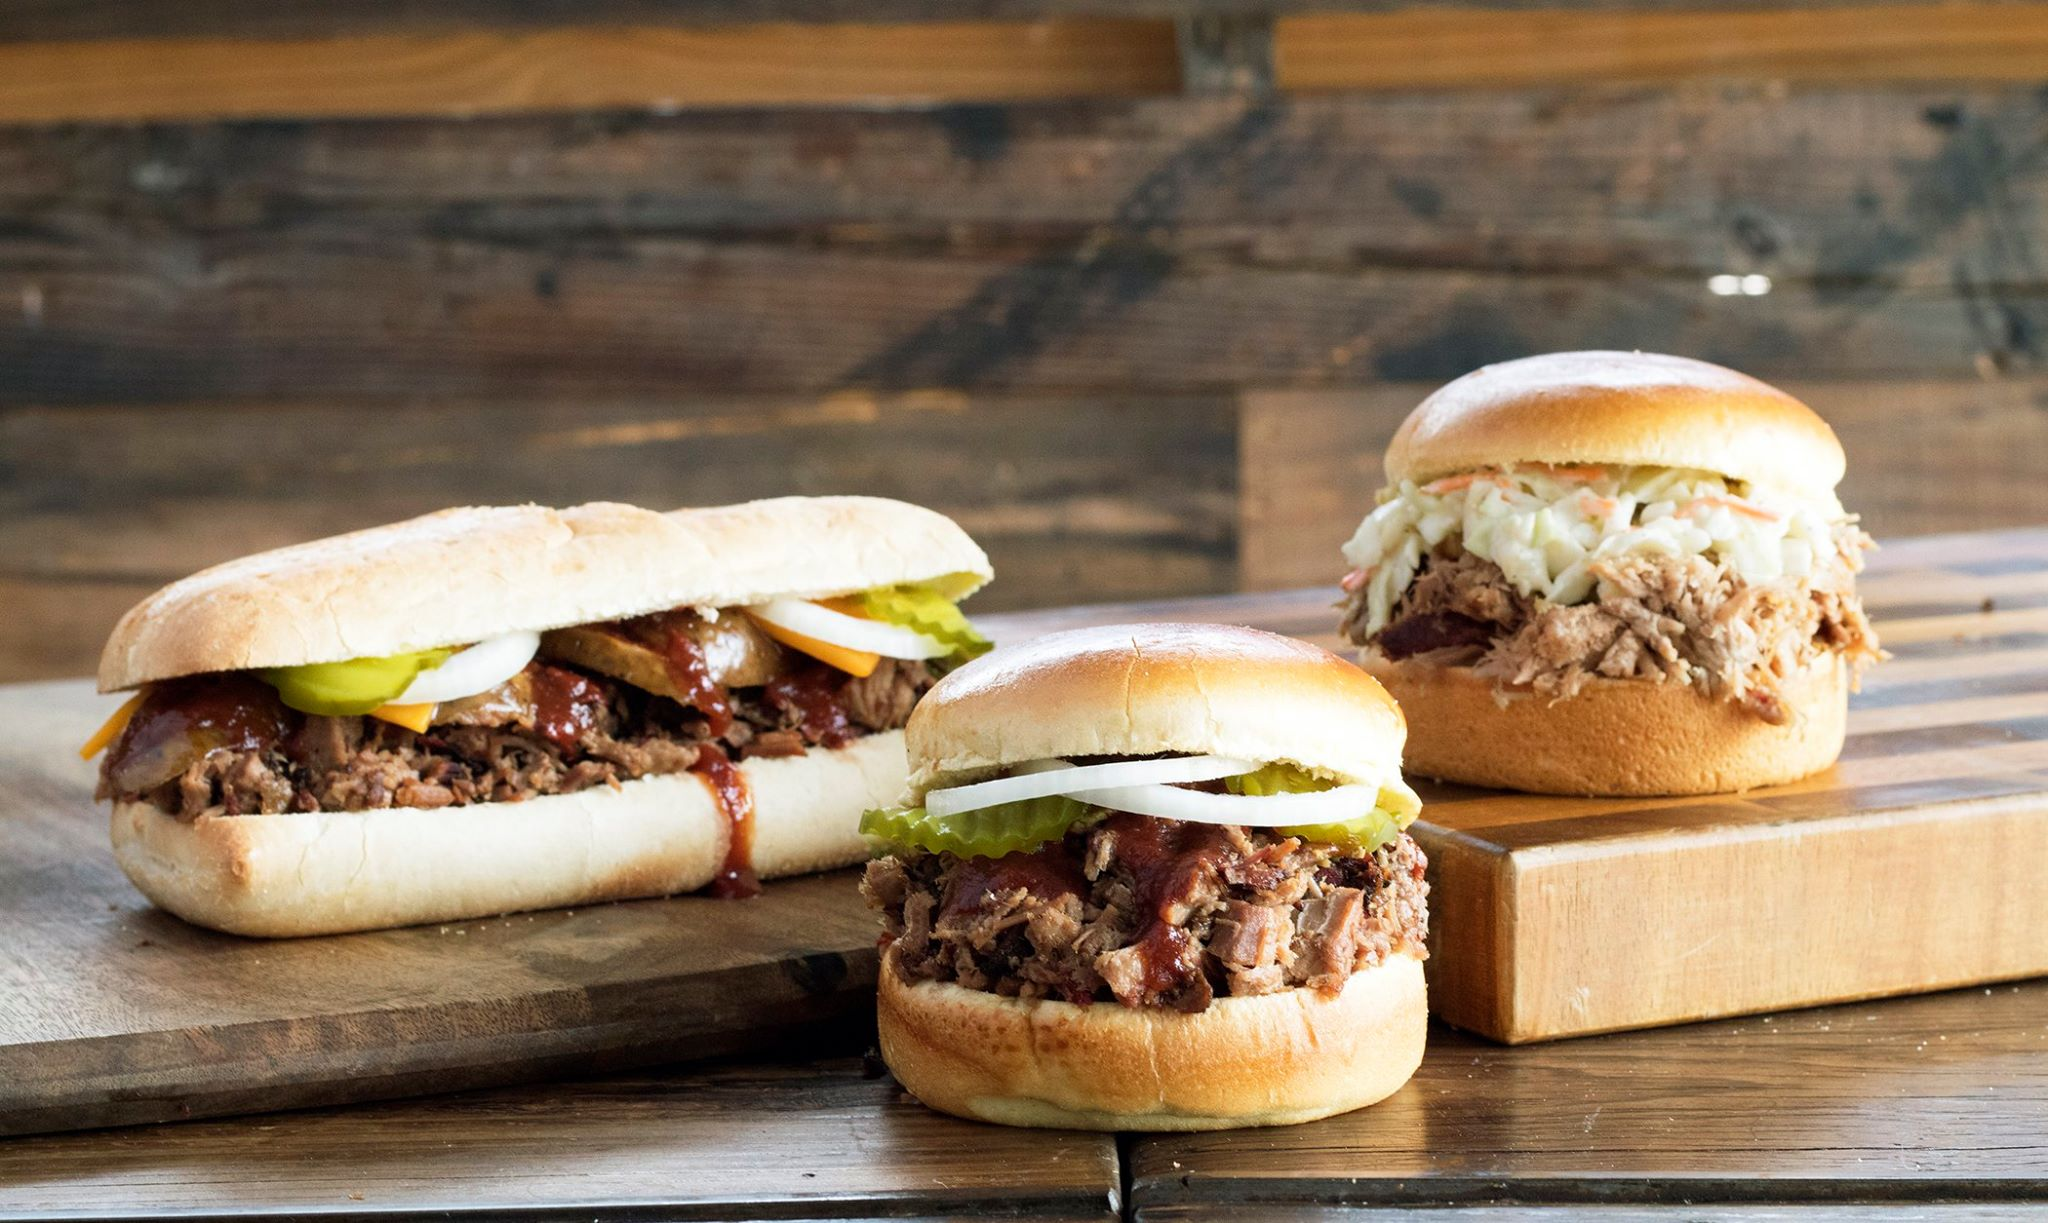 Recipe courtesy of Dicky's Barbecue Pit